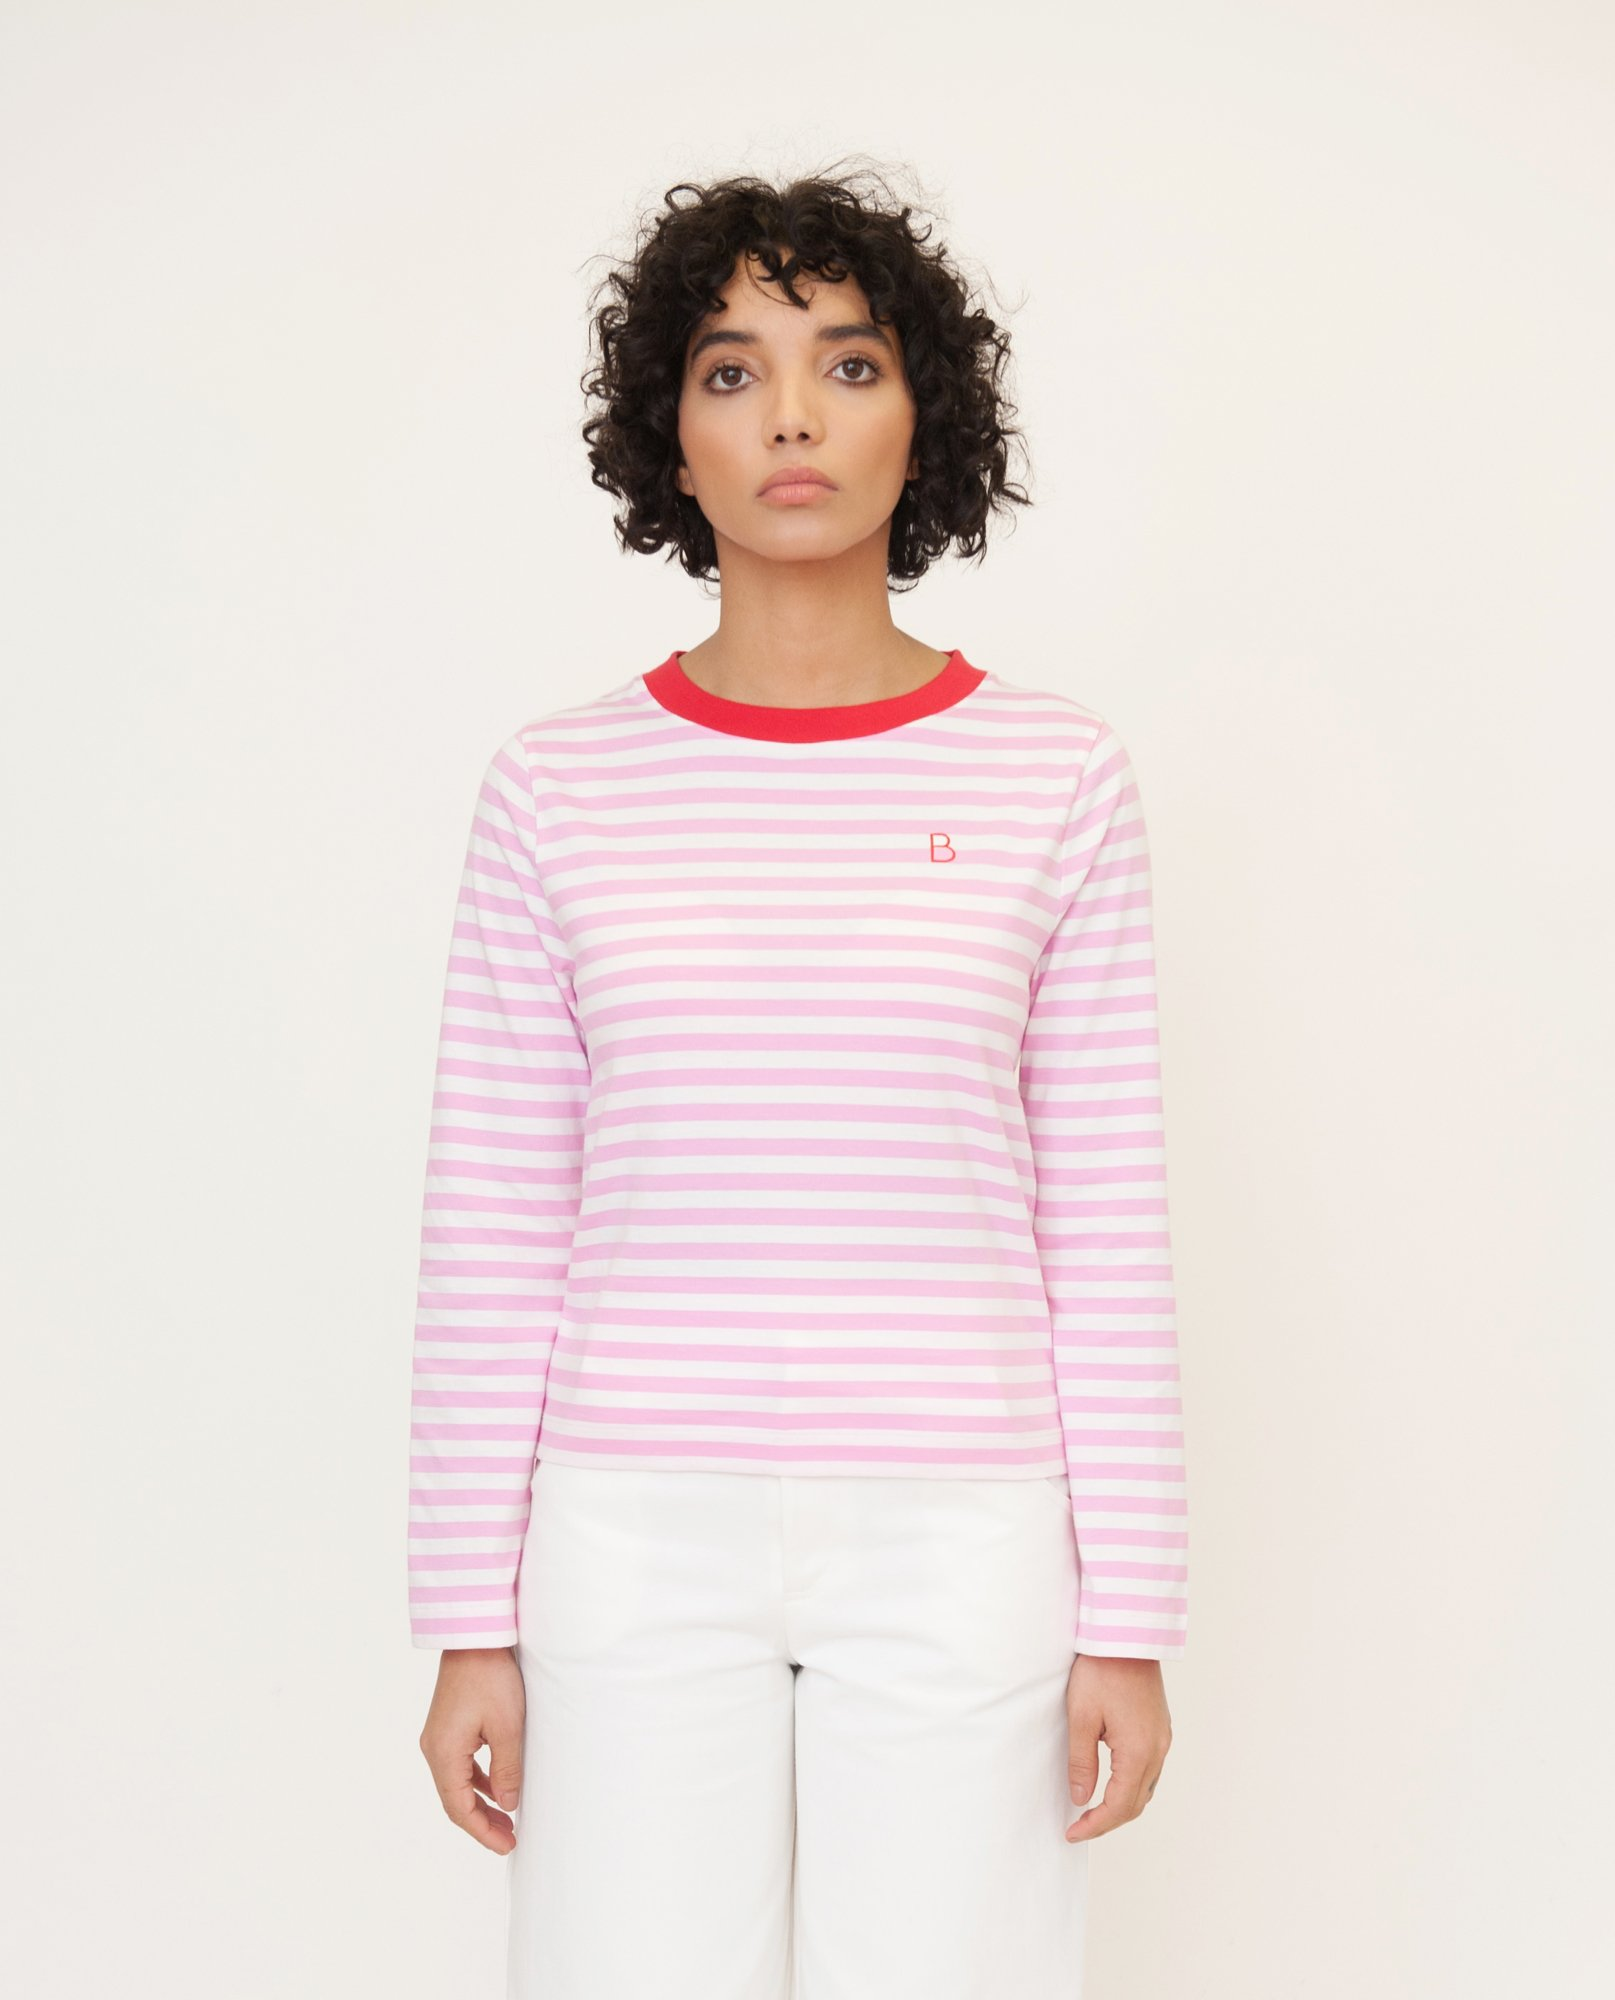 SHOBA Organic Cotton Top In Pink And Red from Beaumont Organic